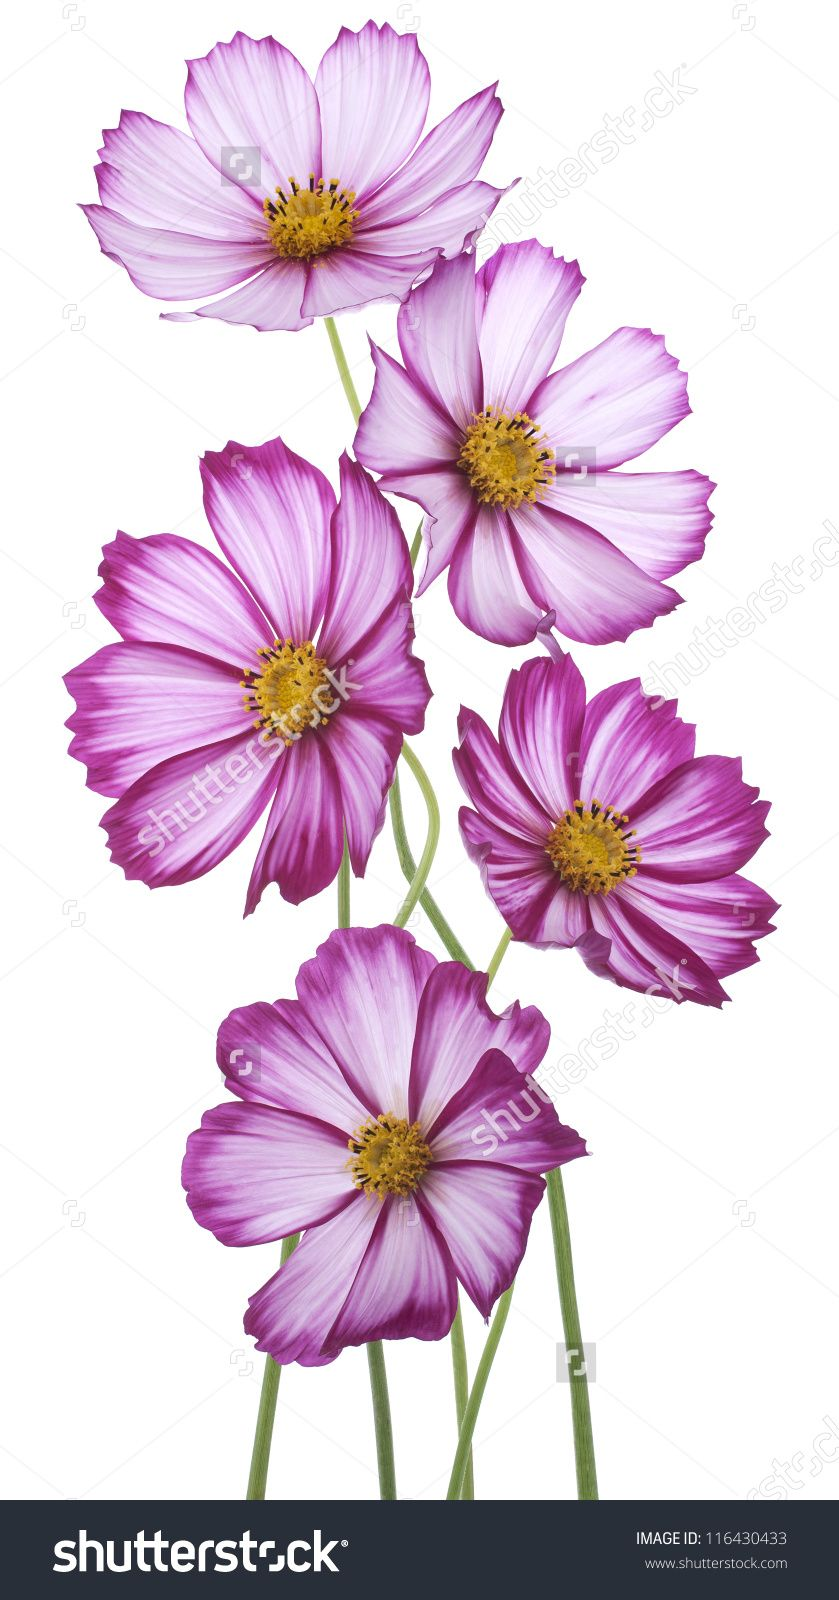 Studio Shot Of Magenta Colored Cosmos Flowers Isolated On White Background Large Depth Of Field Dof Macro Blue Flower Art Cosmos Flowers Flower Drawing